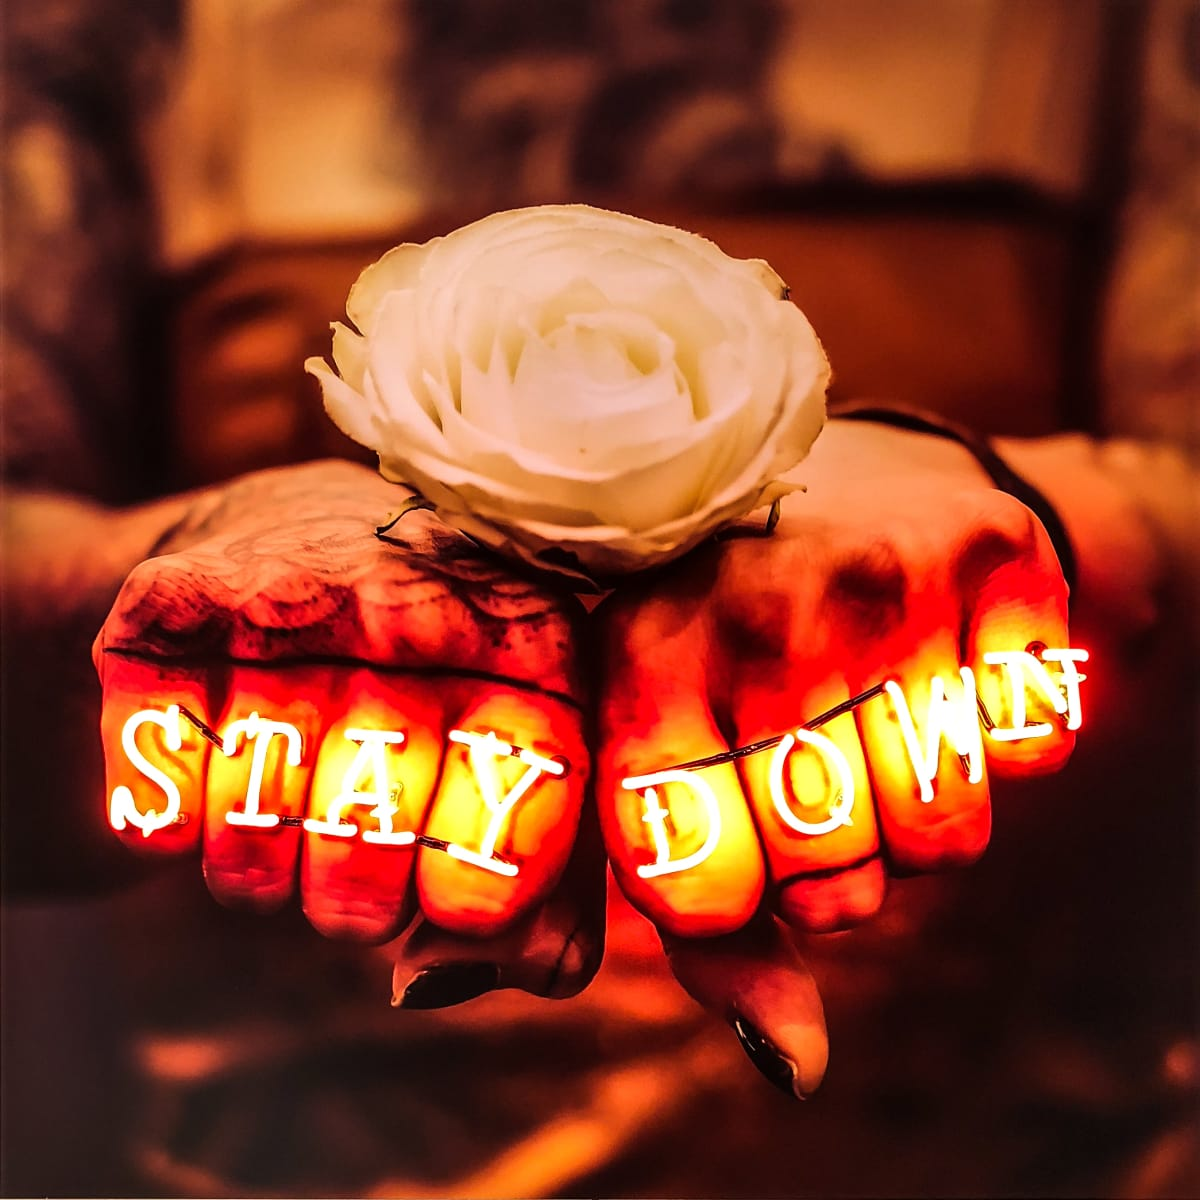 Stuart Robertson STAY DOWN Hand blown glass lettering, orange neon, giclée archival print, black acrylic box mount 100 x 100 x 7.5 cm 39 3/8 x 39 3/8 x 2 3/4 in Edition of 6